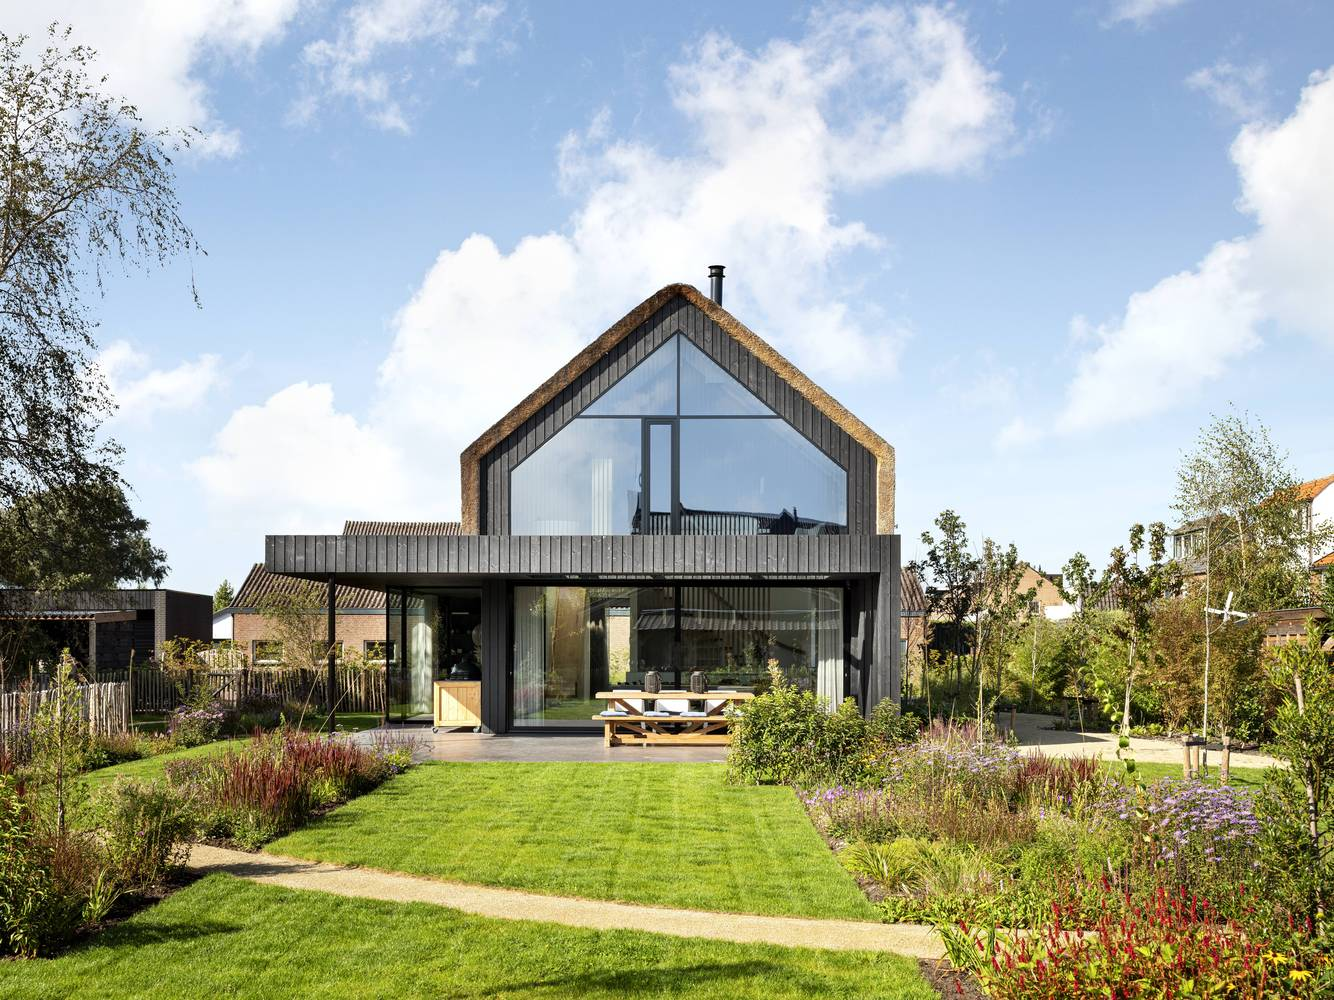 The rear of the house has these big, full-height windows that frame the lovely garden views